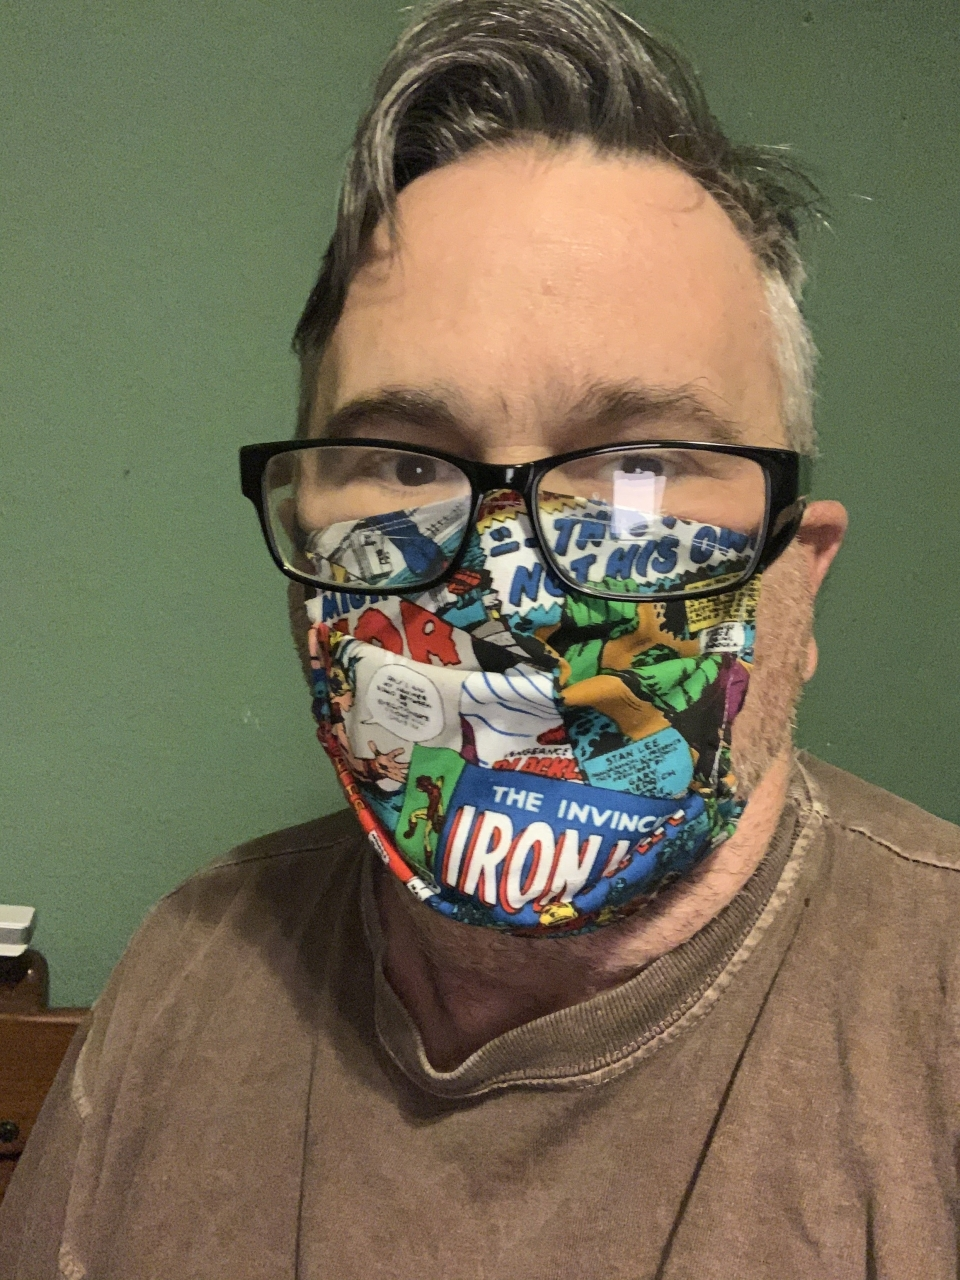 Since it looks like wearing a mask is going to be mandatory in the next few days, mom decided to start making some - here's my Marvel fanboy mask - wait till you see my Batman one -